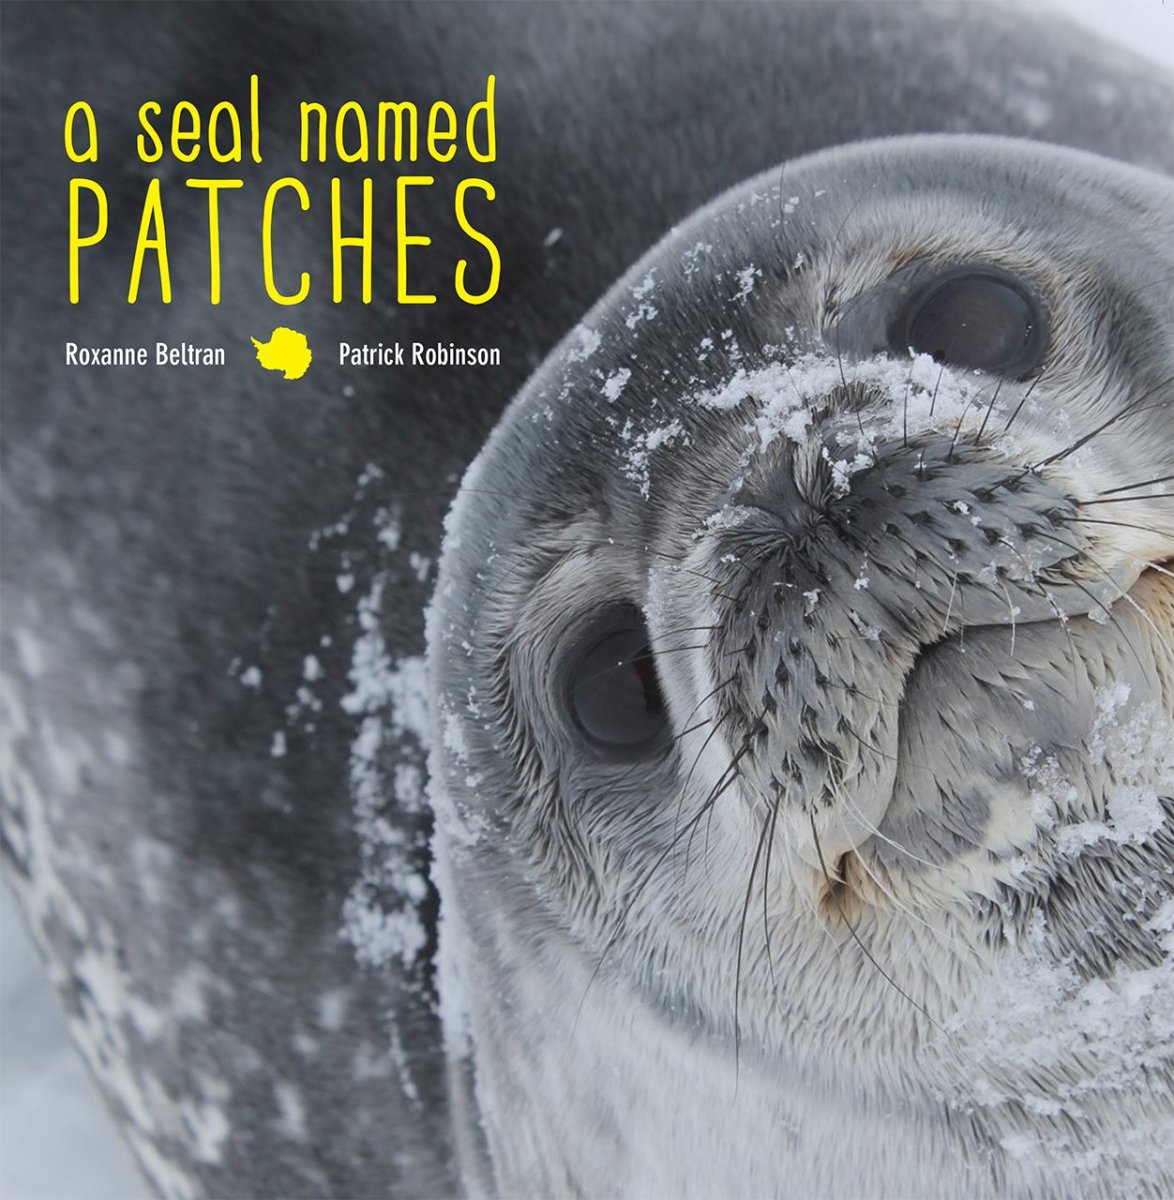 A Seal Named Patches by Roxanne Beltran